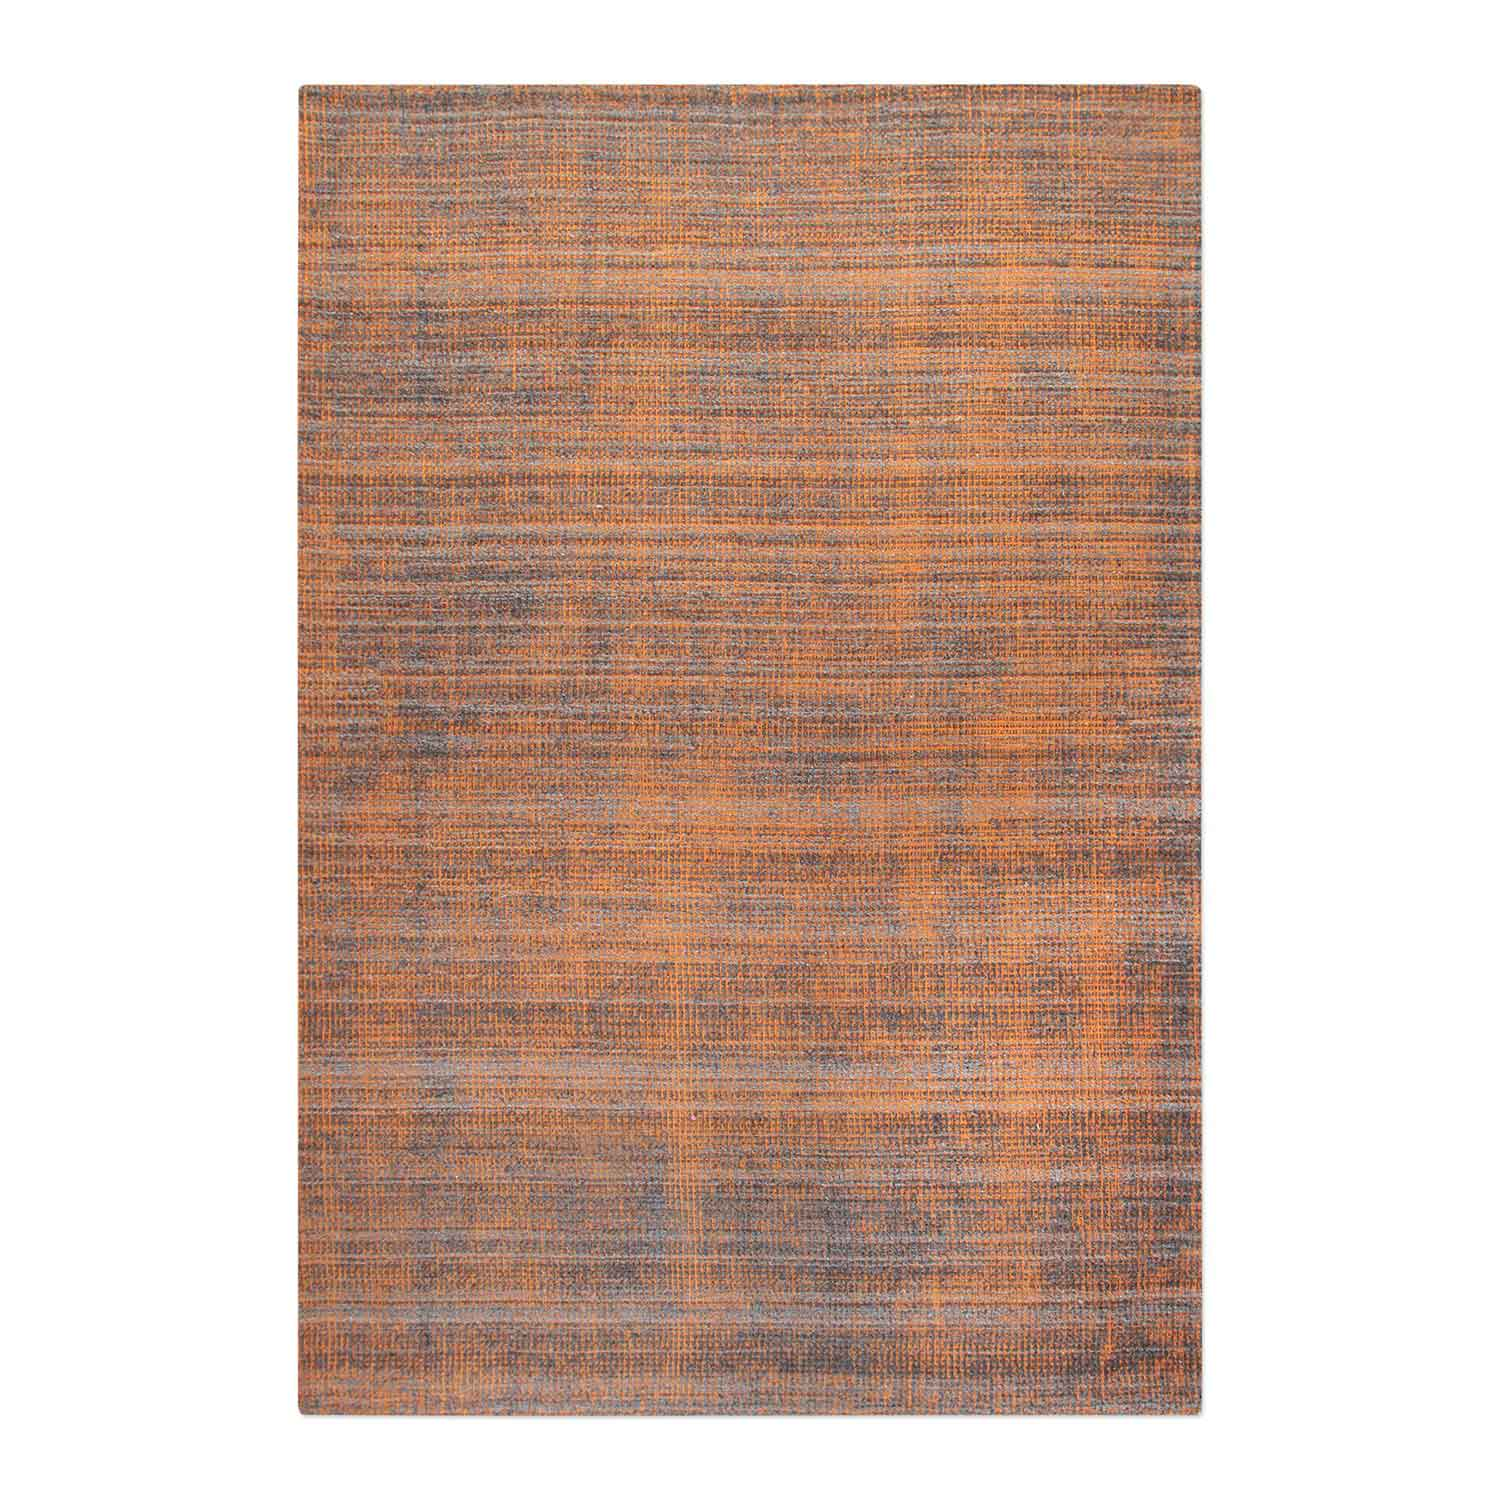 Uttermost Medanos 5 x 8 Rug - Burnt Orange